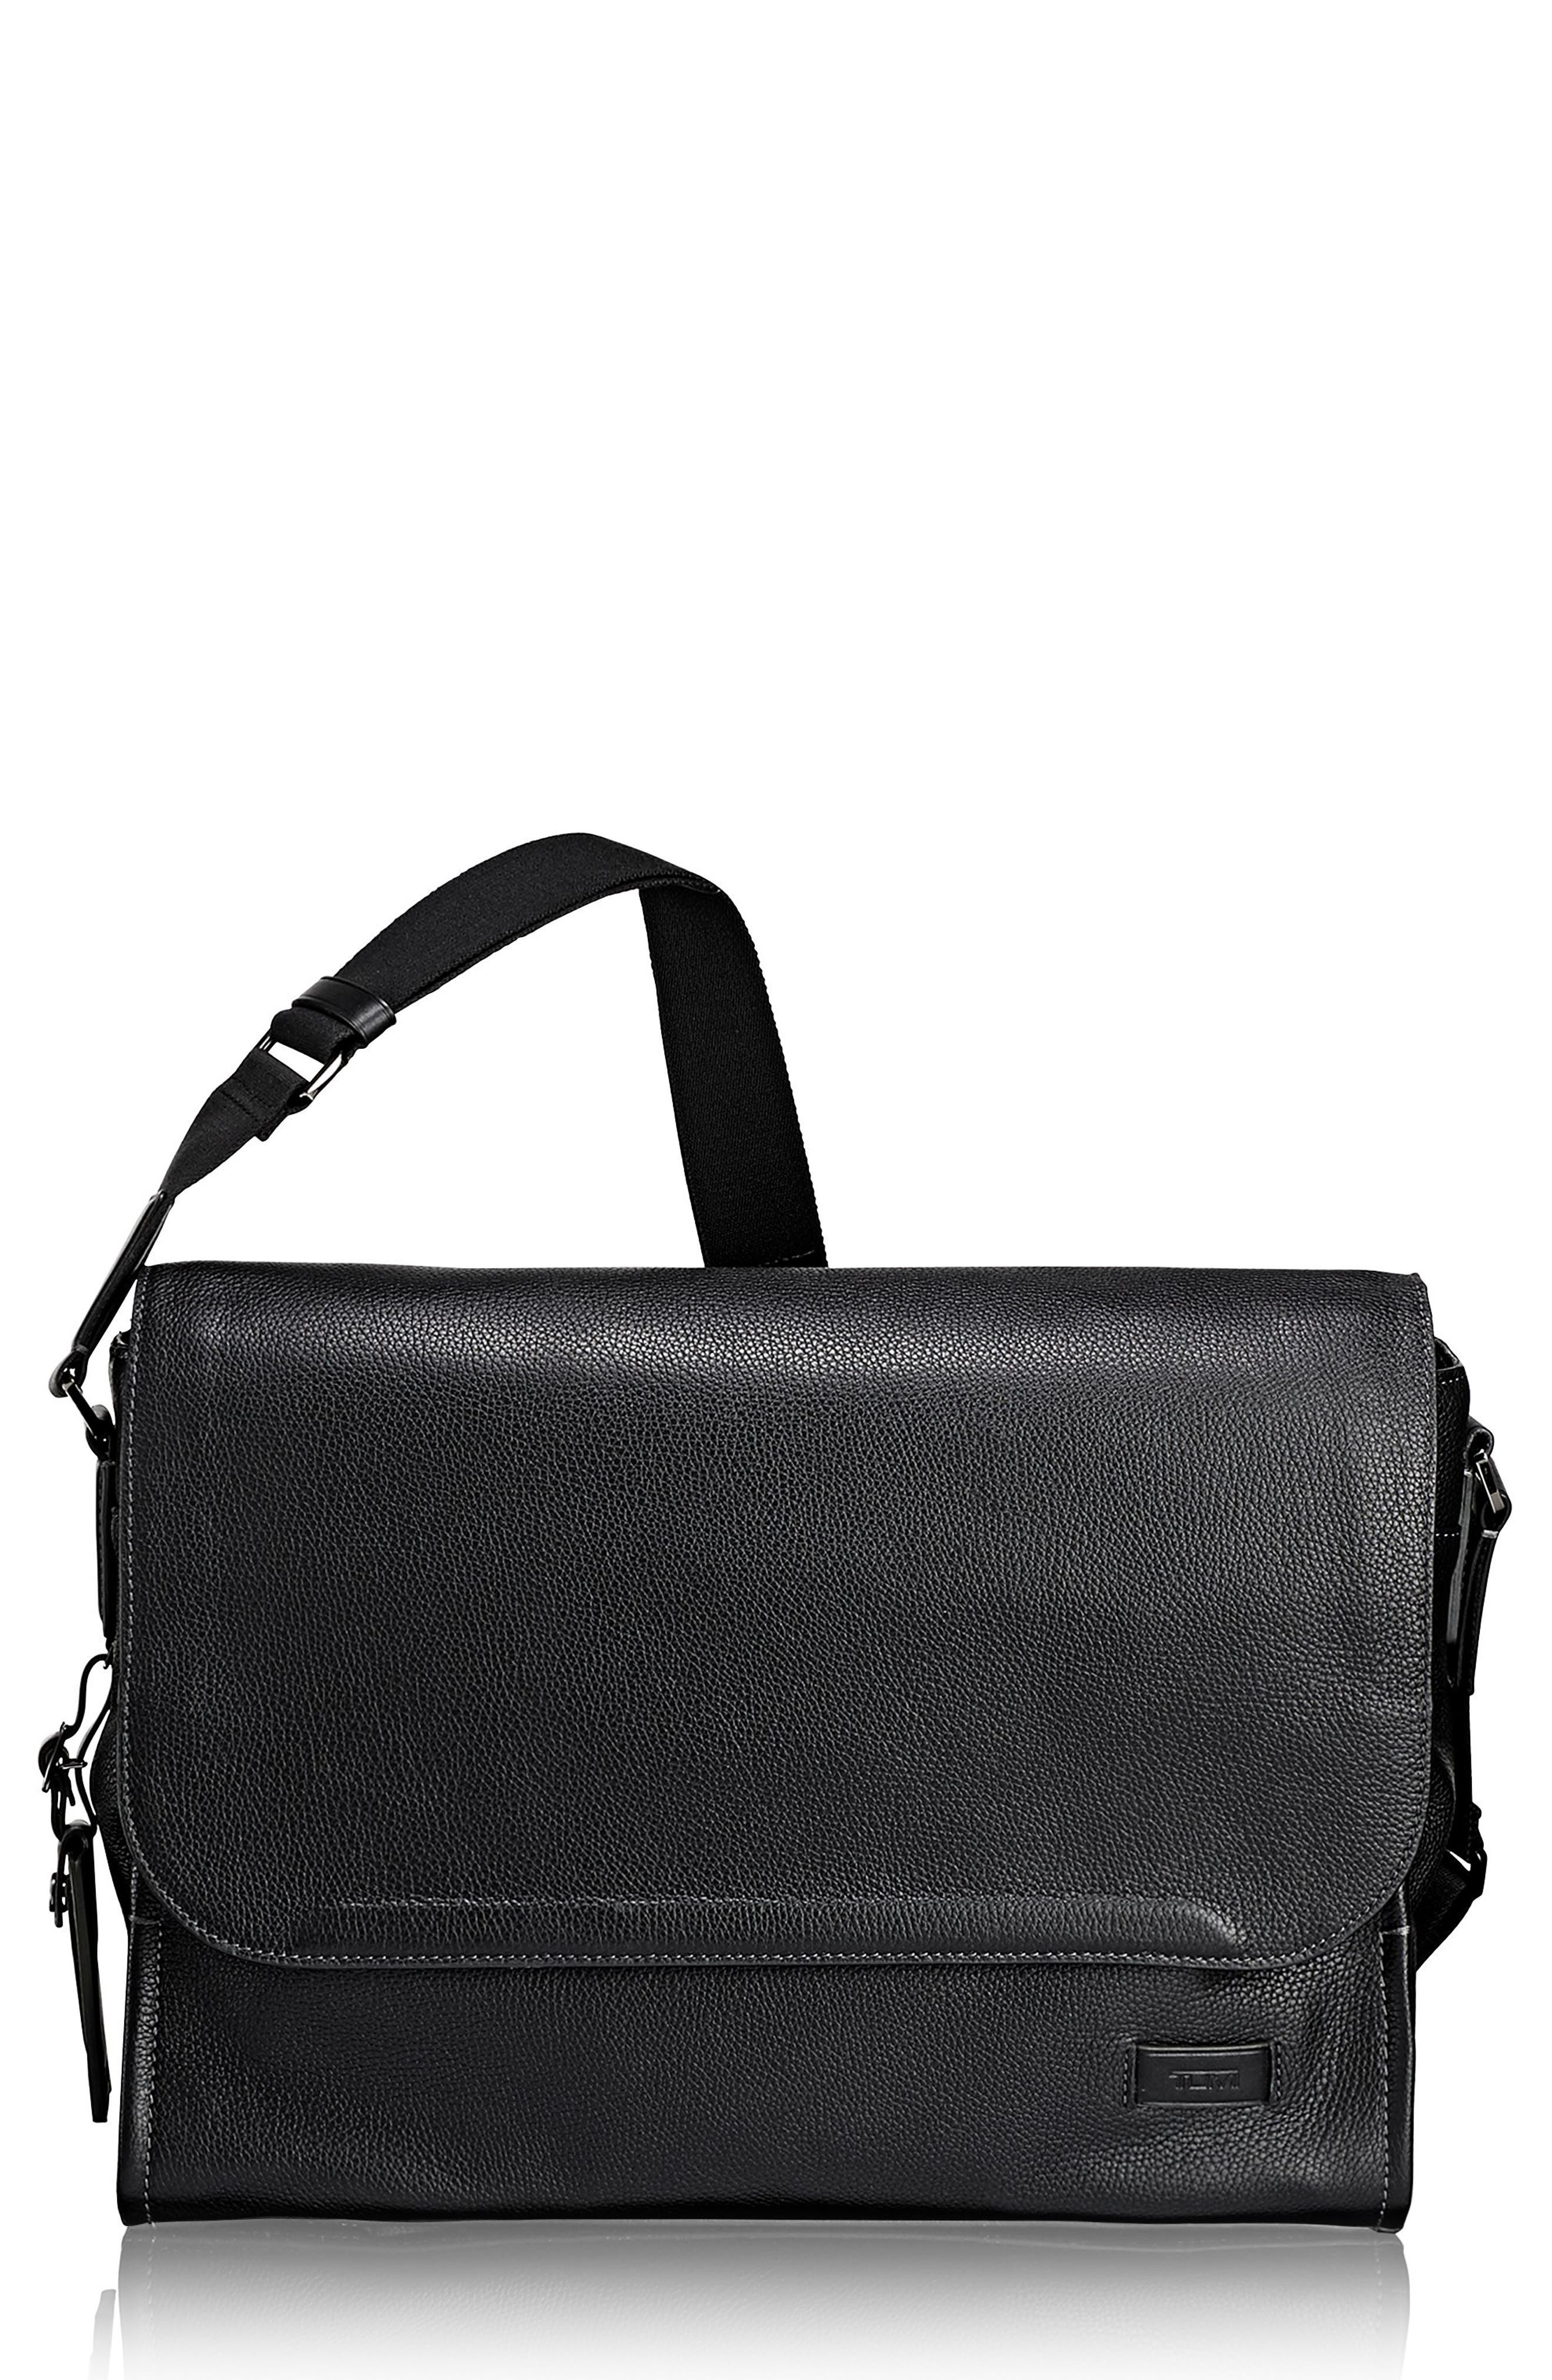 Harrison - Mathews Messenger Bag,                             Main thumbnail 1, color,                             Black